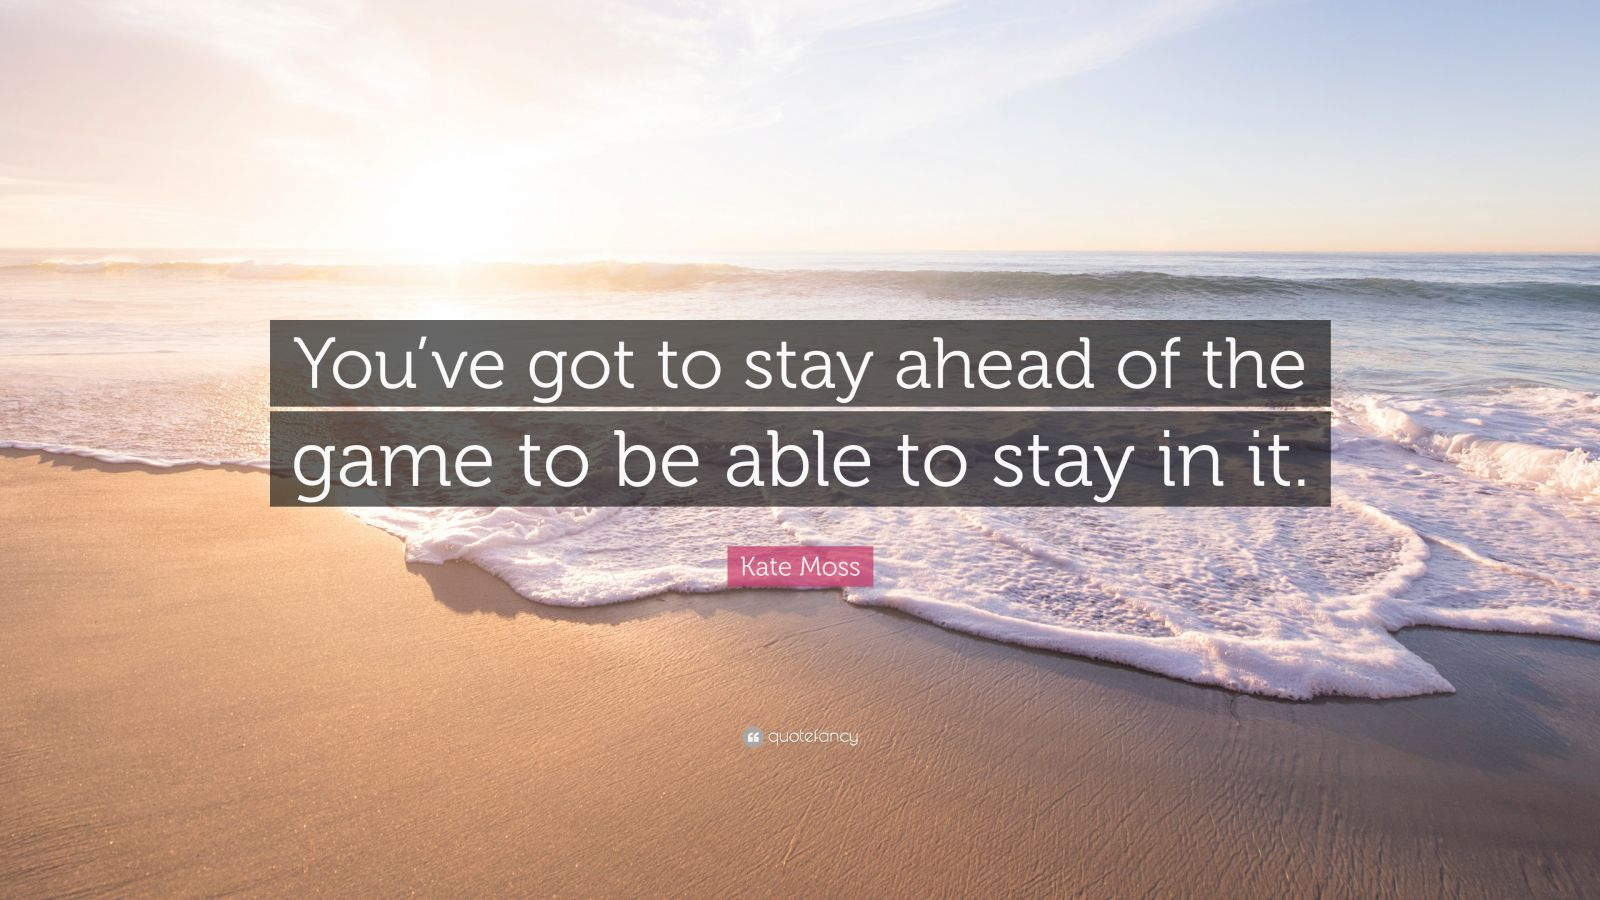 """Kate Moss Quote: """"You've got to stay ahead of the game to be able to stay in it."""" (7 wallpapers) - Quotefancy"""